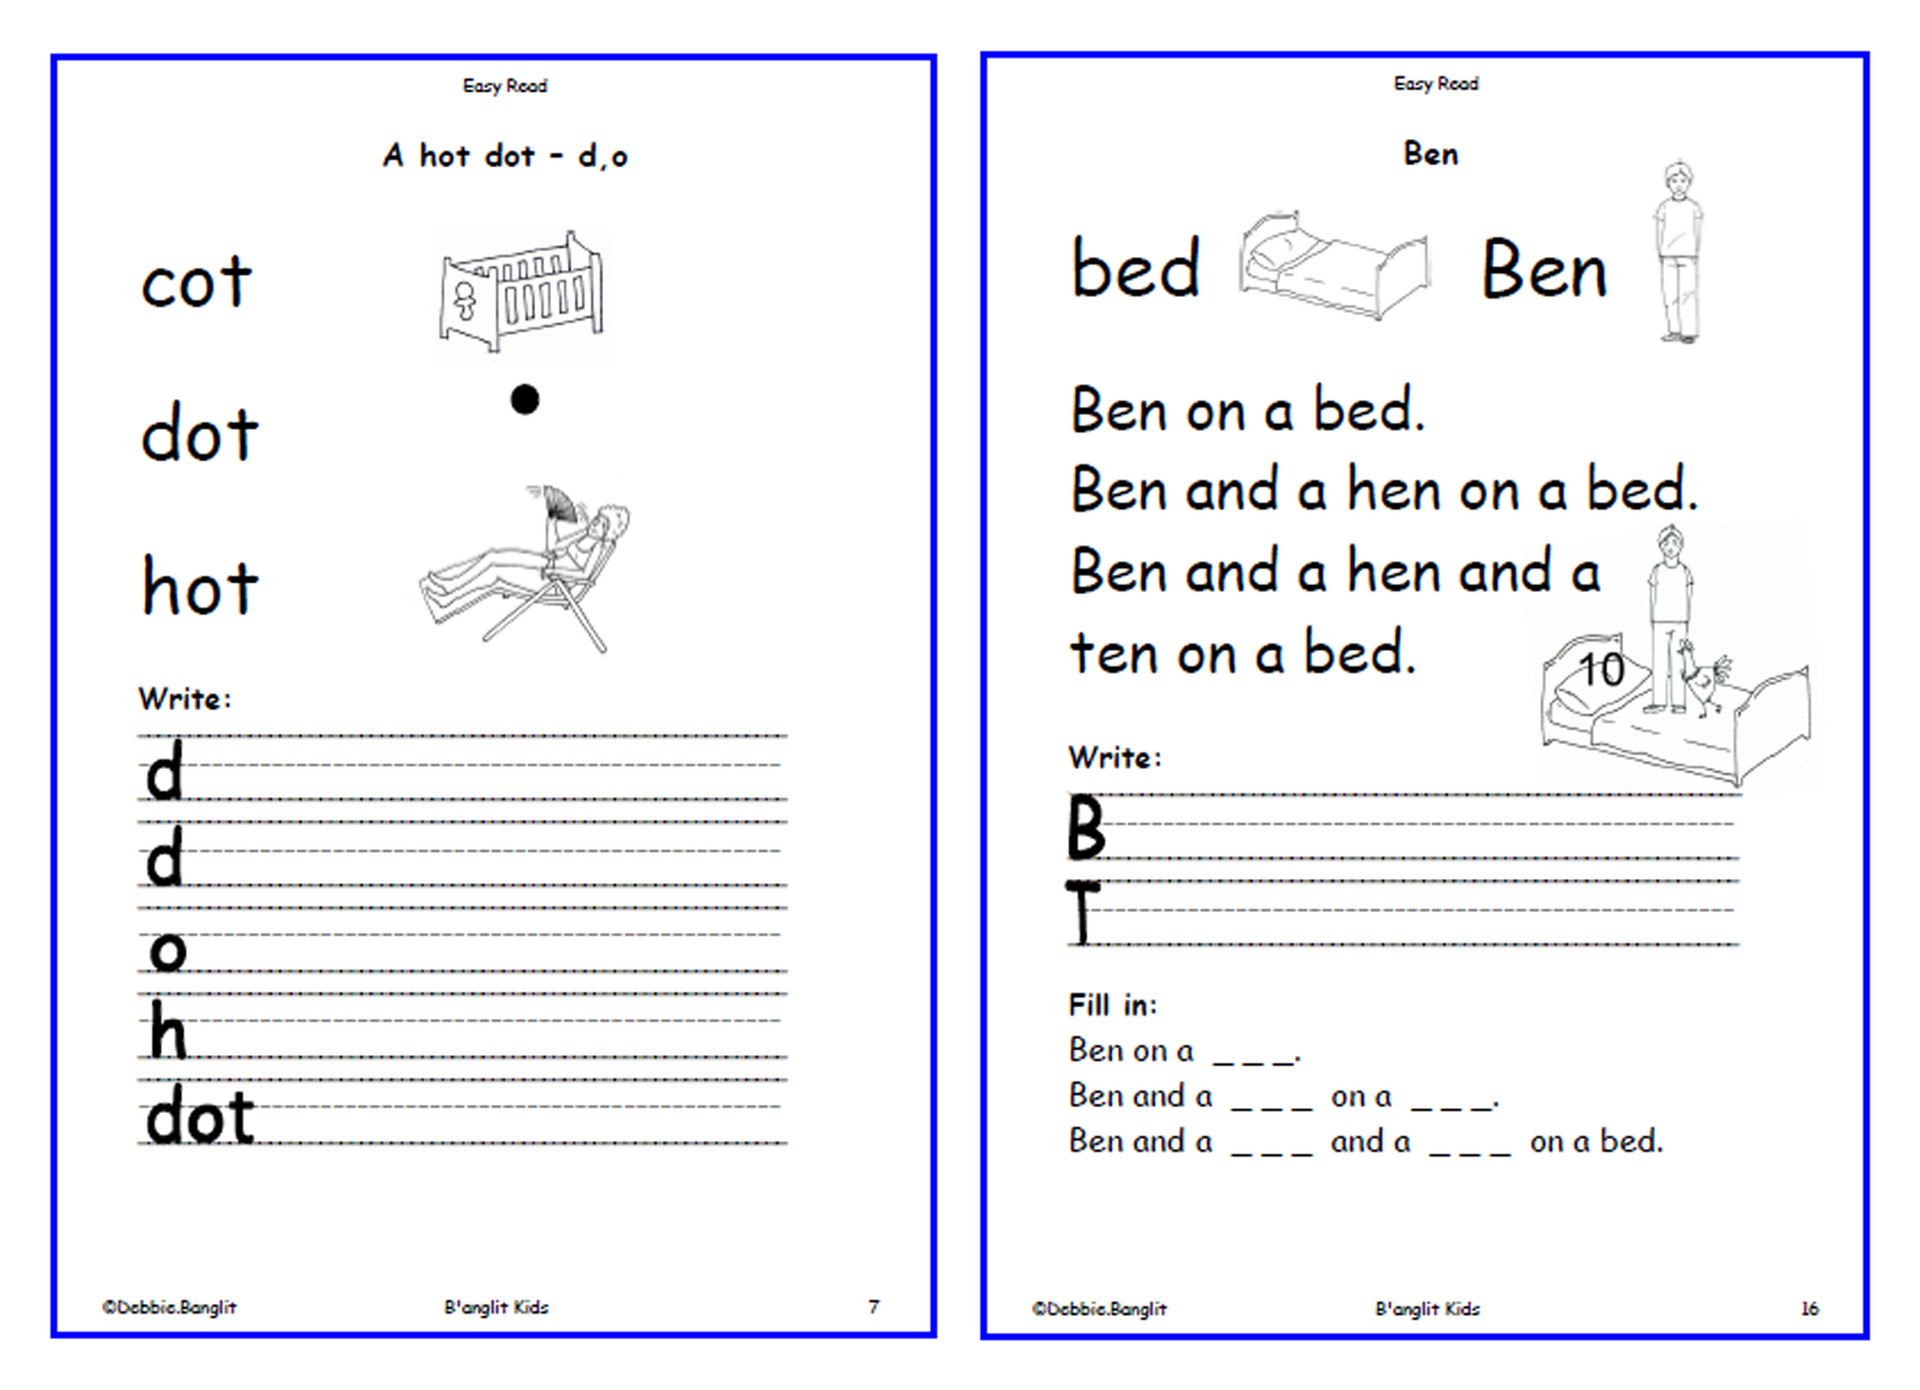 Easy Read - worksheets 7 & 16